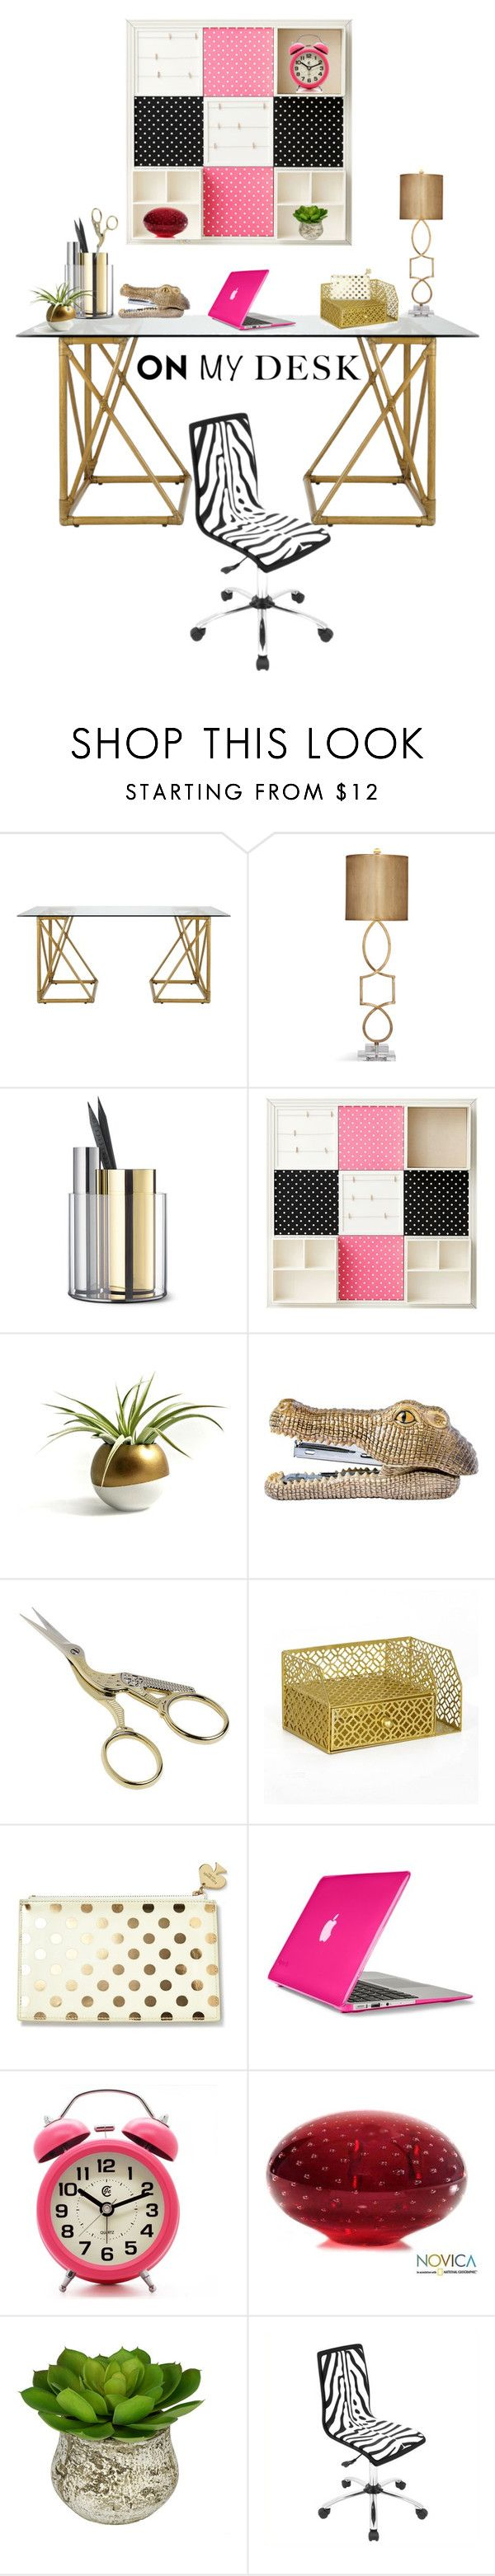 """""""Kwens Boetiek"""" by kwensboetiek ❤ liked on Polyvore featuring interior, interiors, interior design, home, home decor, interior decorating, Selamat, Beyond Object, PBteen and Conran"""